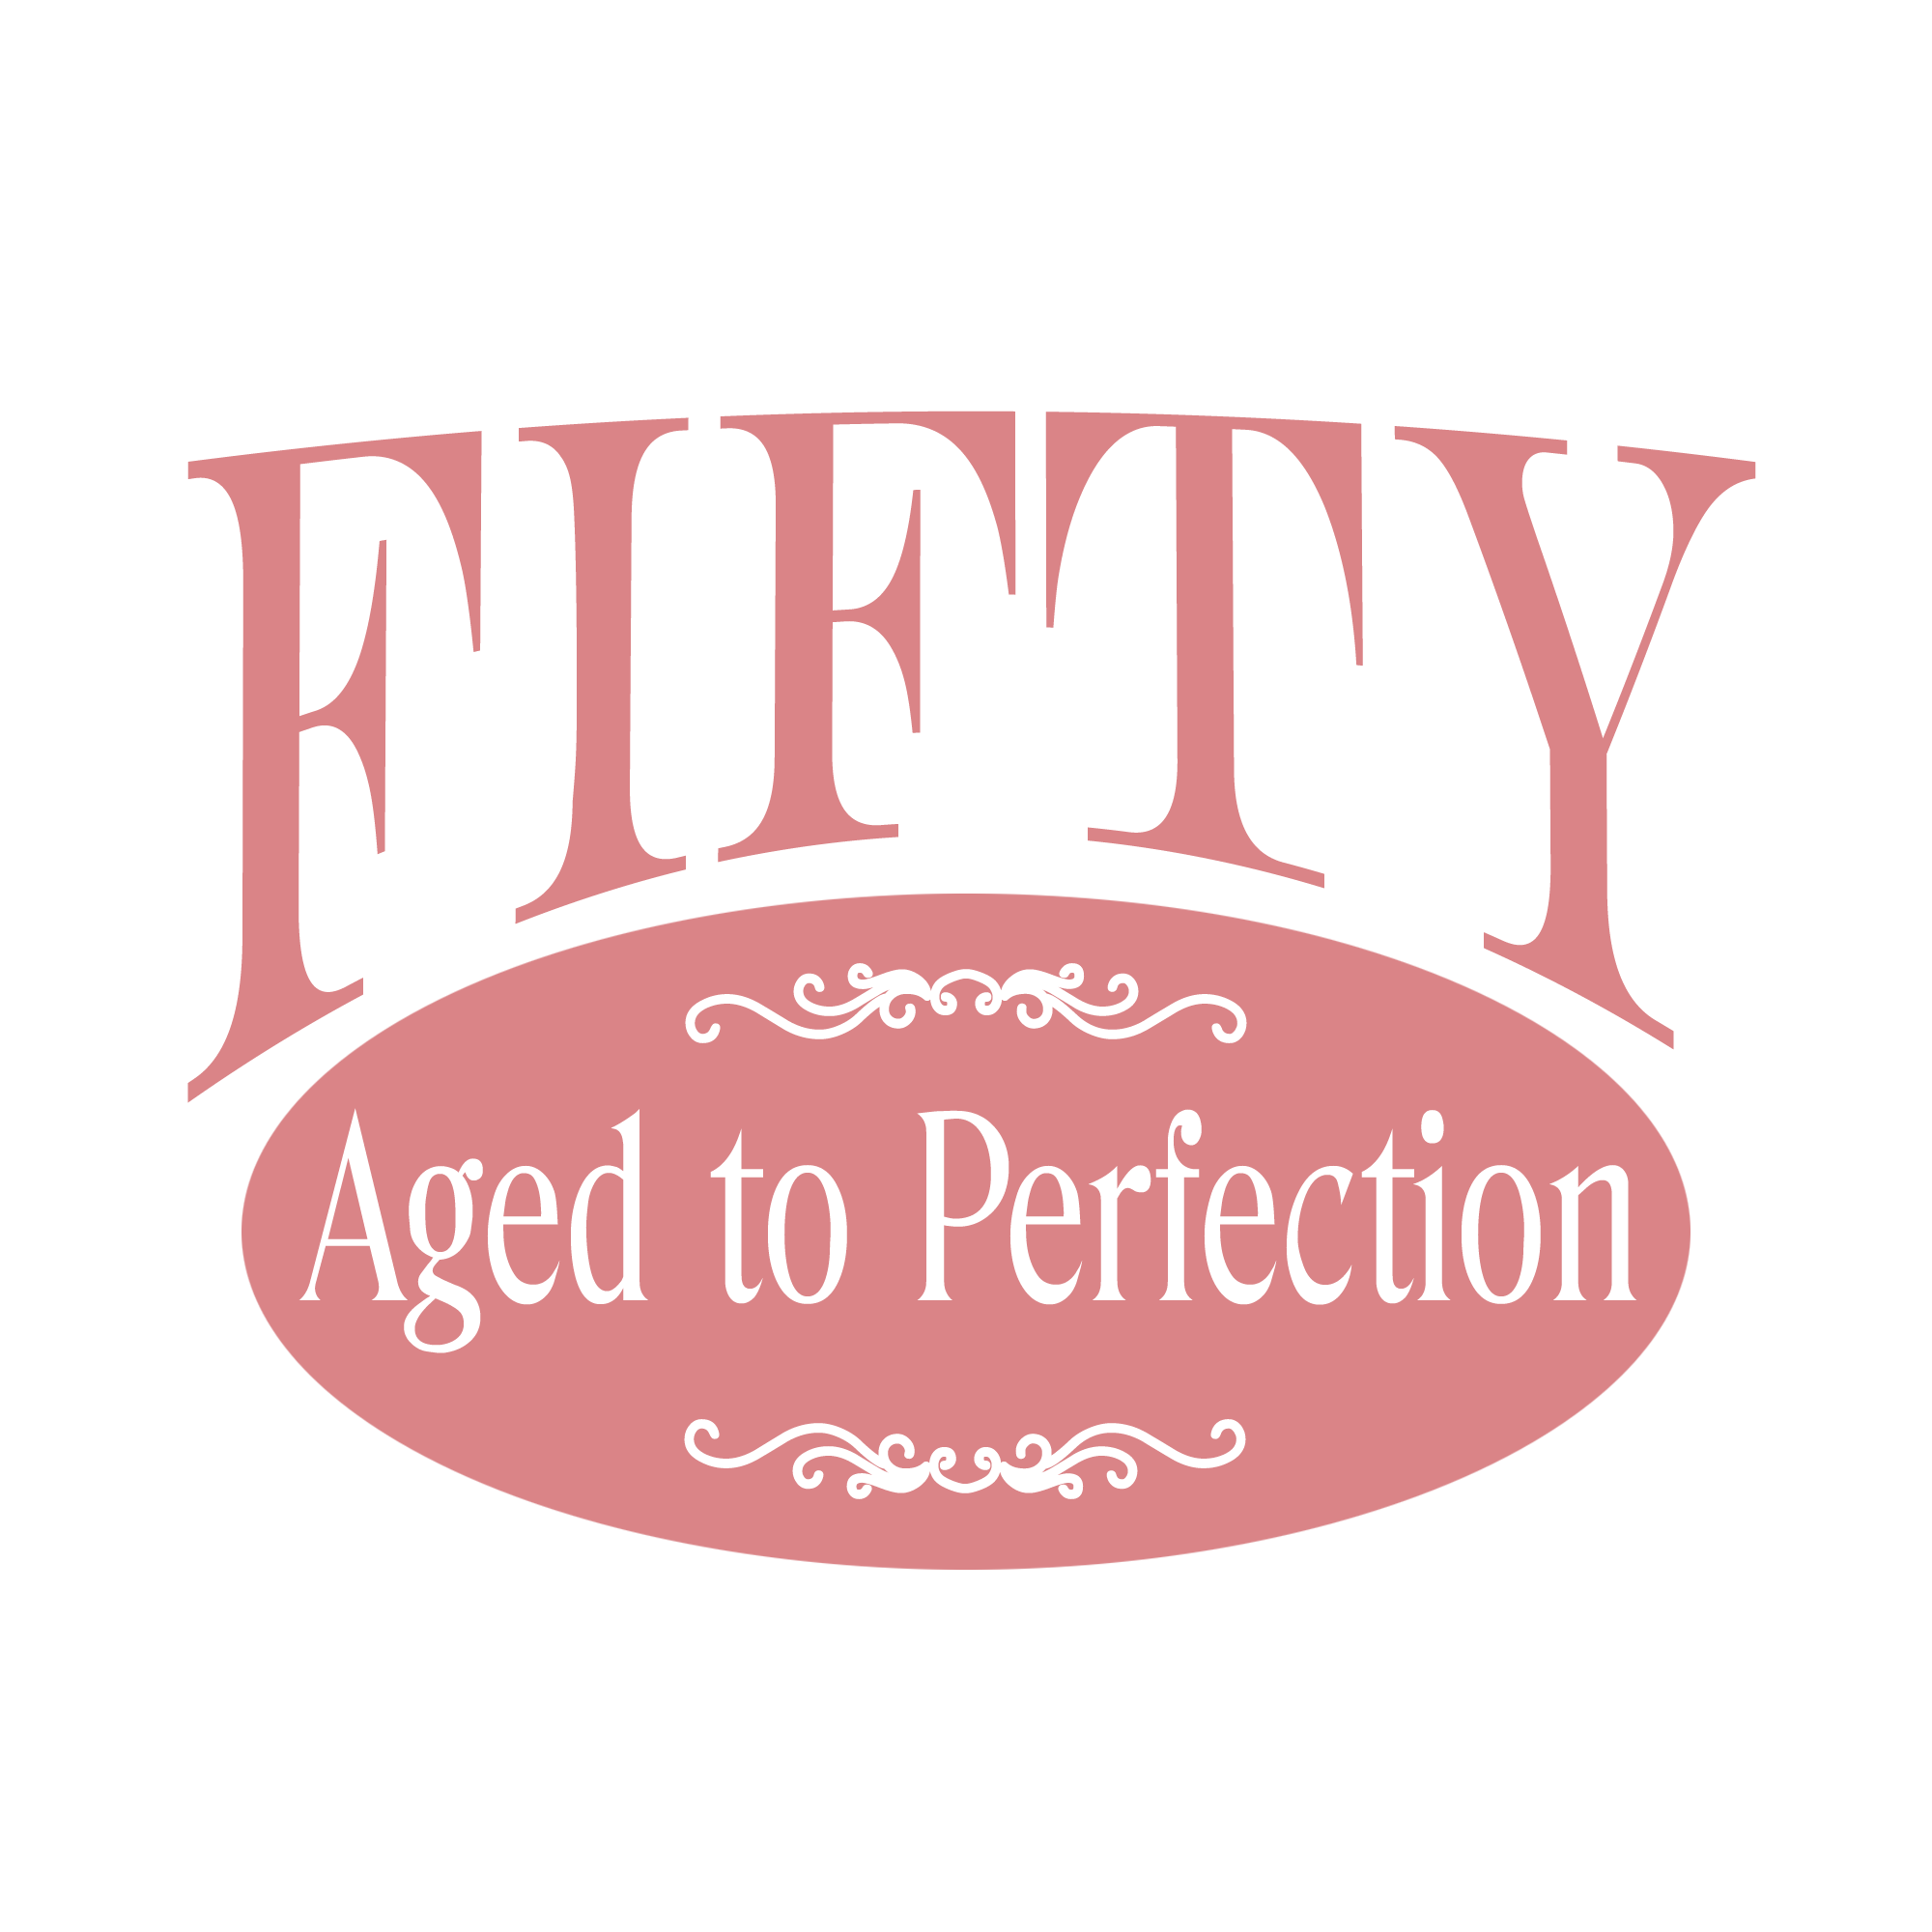 50th Birthday Humor Saying For Woman Fifty Aged To Perfection T Shirt And Cool Fiftieth Gift Ideas This Big 50 Milestone